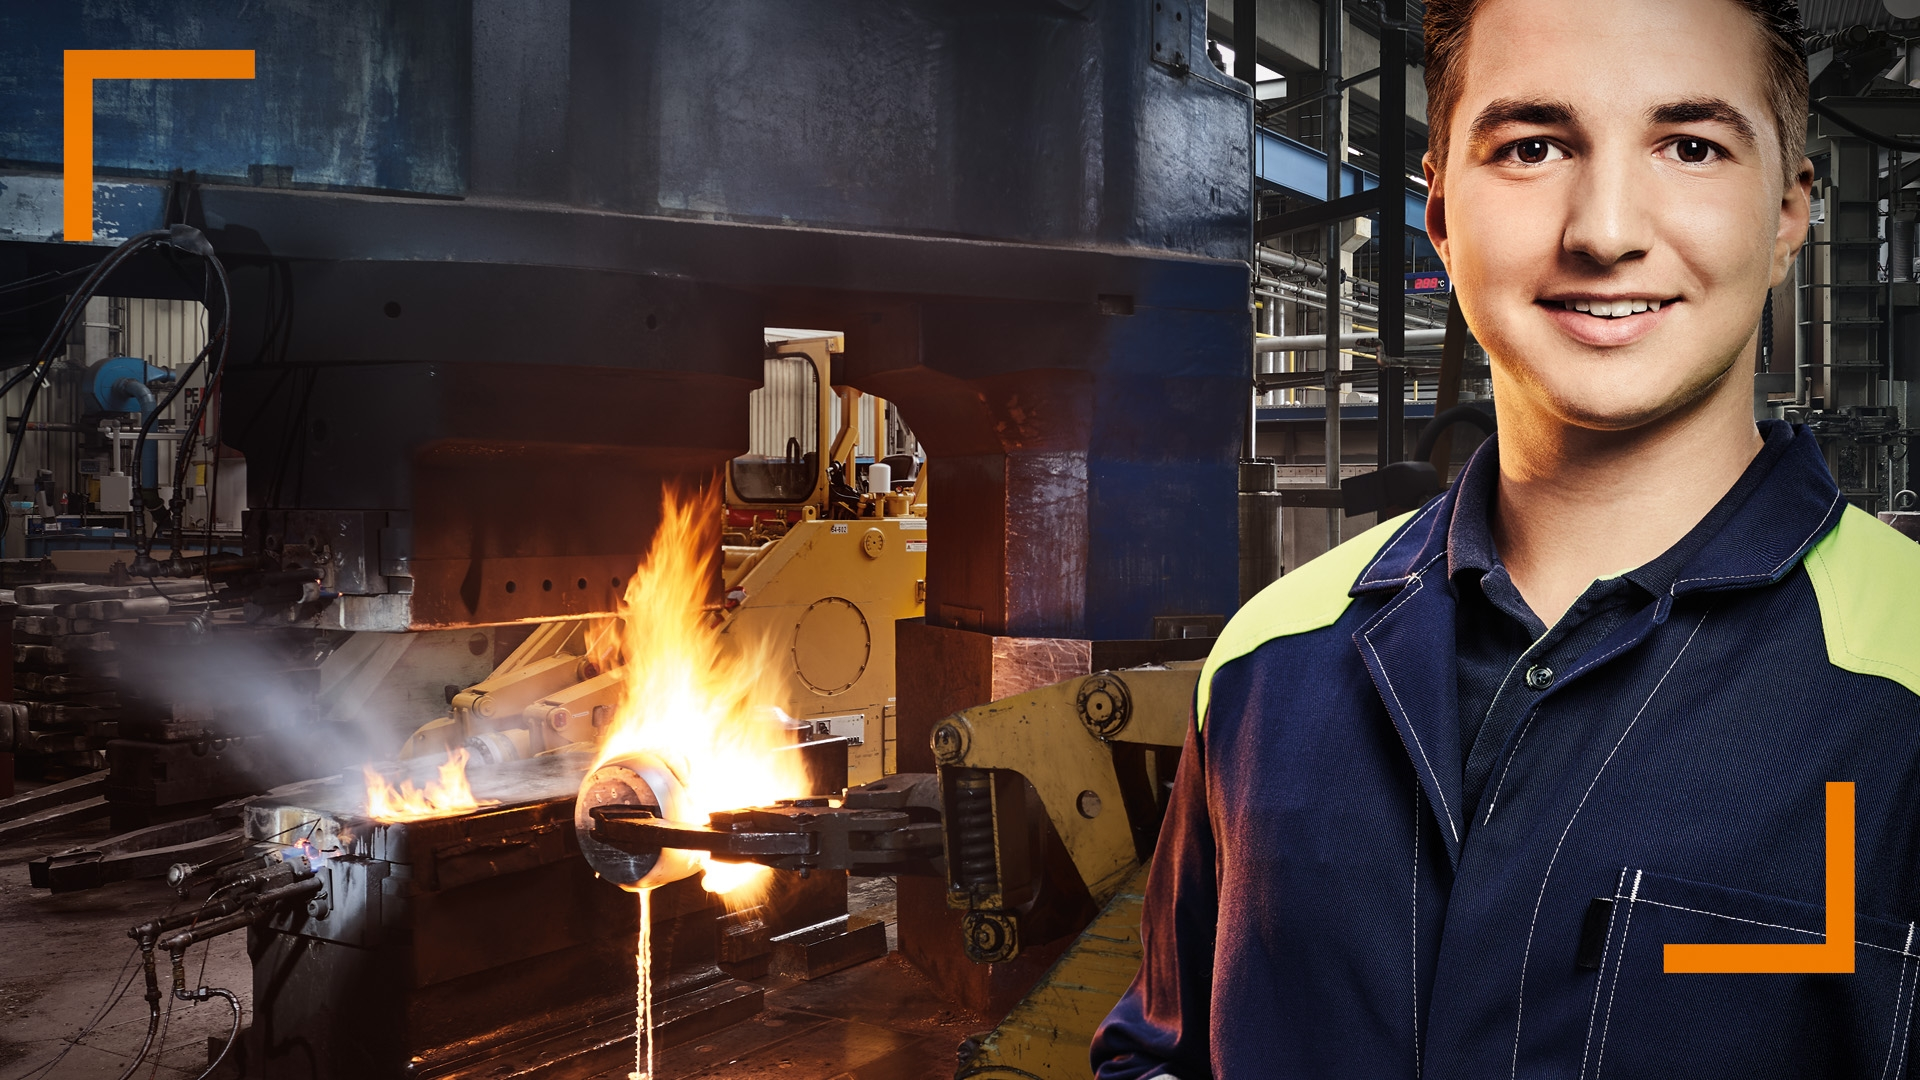 OTTO FUCHS Recruiting Campaign: Male trainee in front of burning furnace